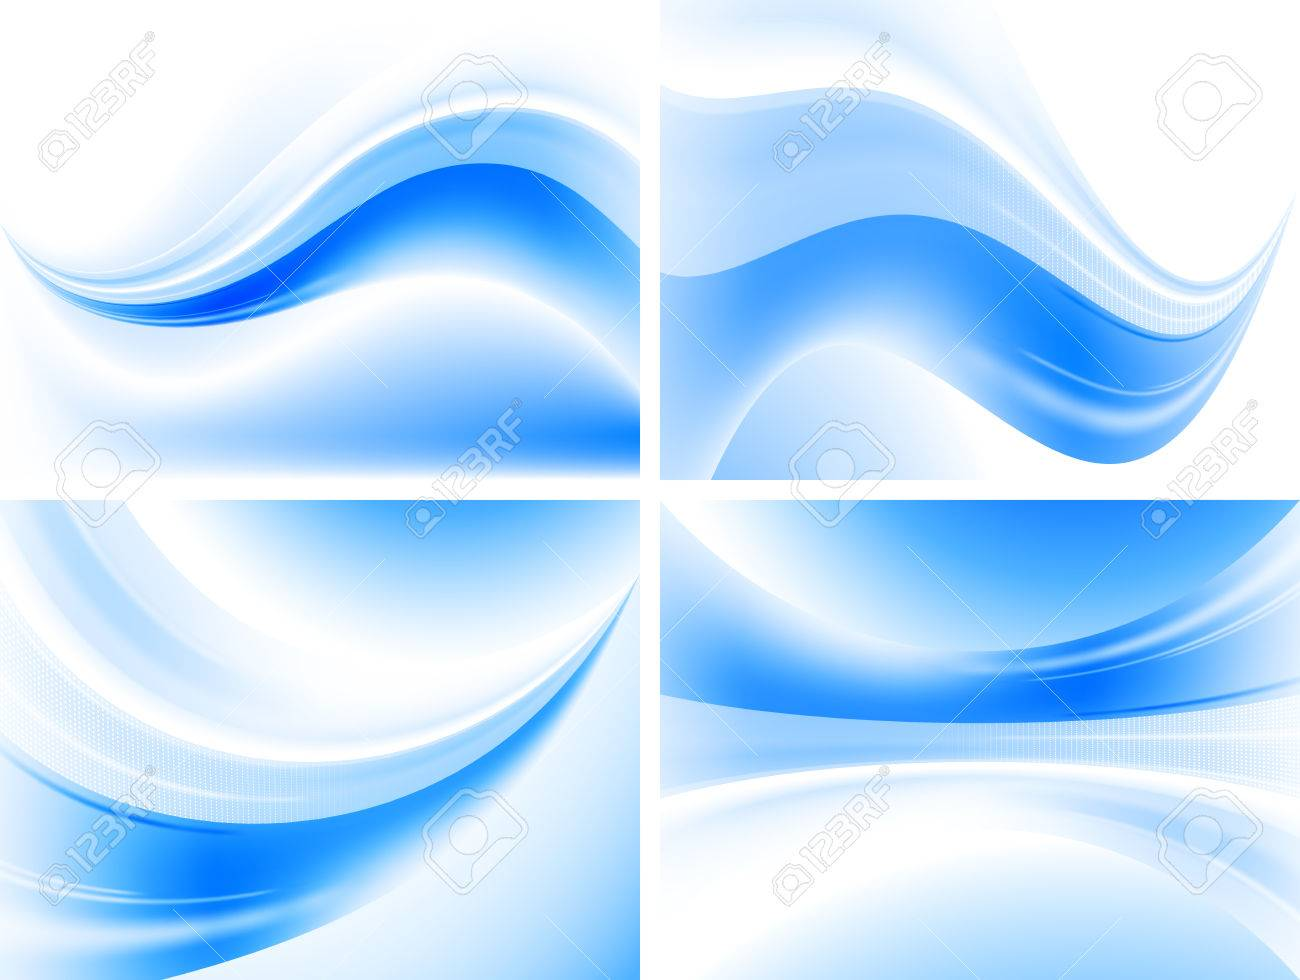 set of simple abstract backgrounds royalty free cliparts, vectors